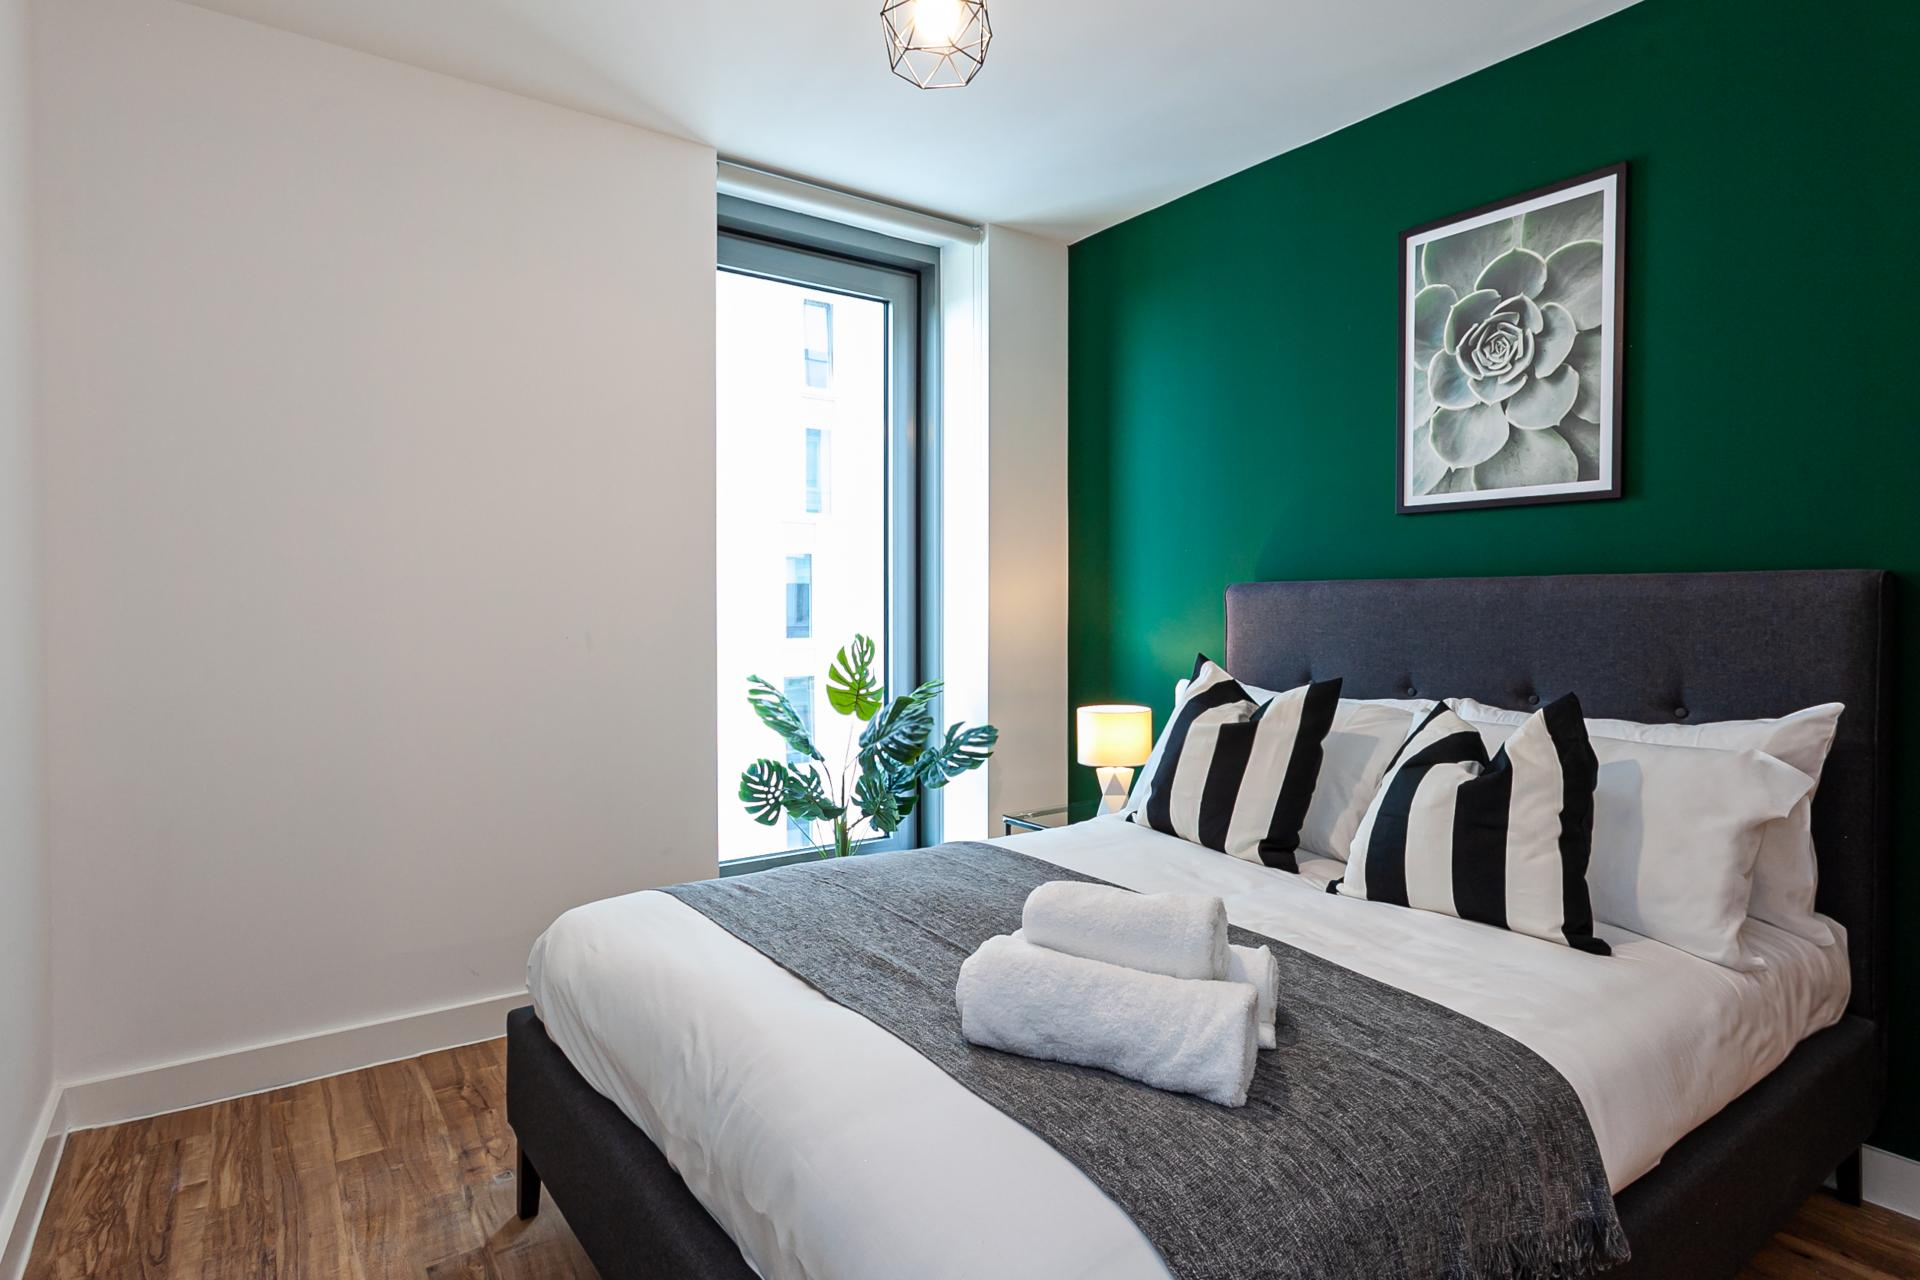 Bedroom at Michigan Point Tower, Ordsall, Manchester - Citybase Apartments